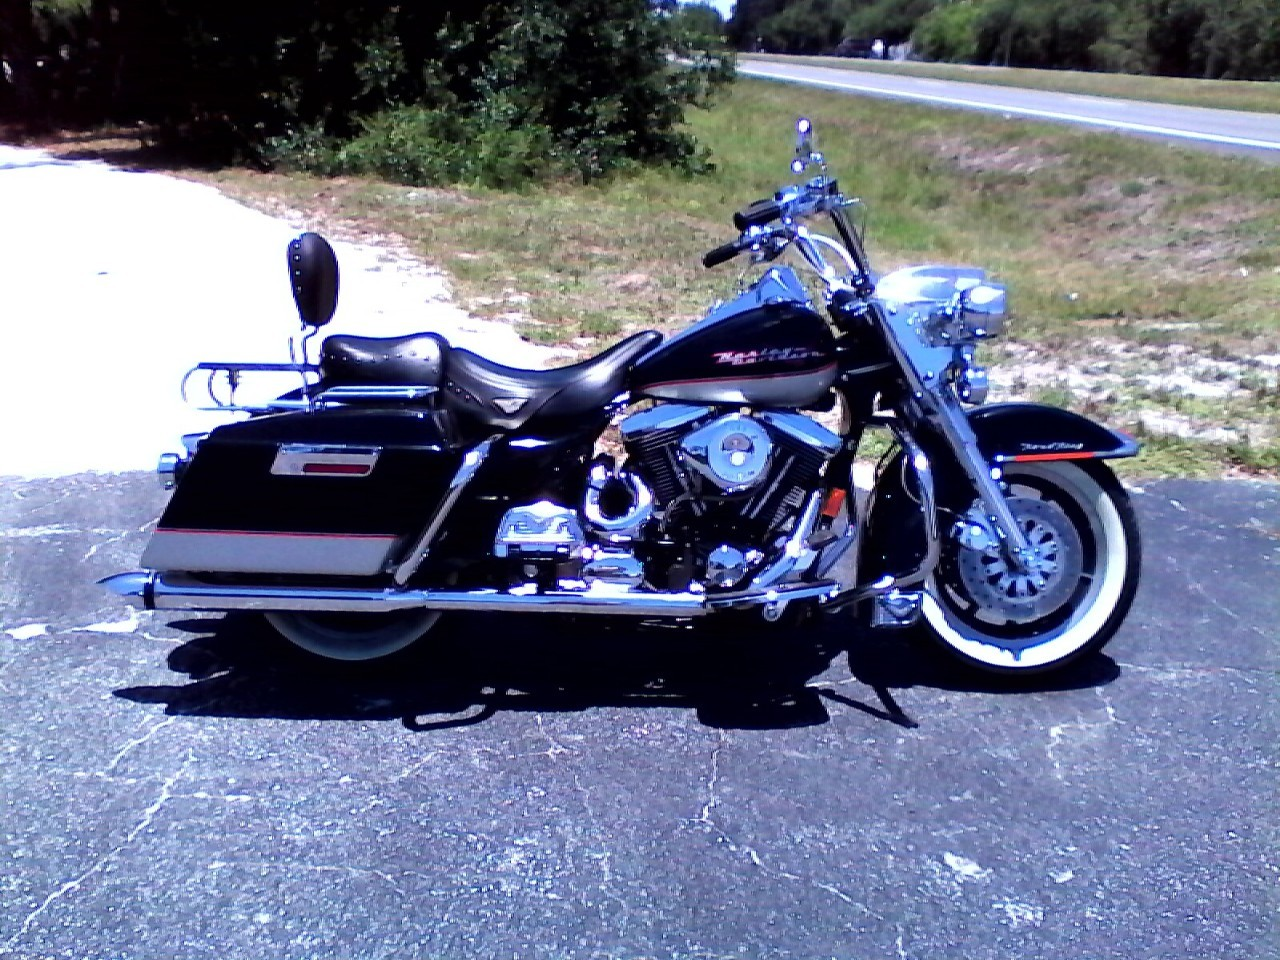 1994 Hd road king, motorcycle listing